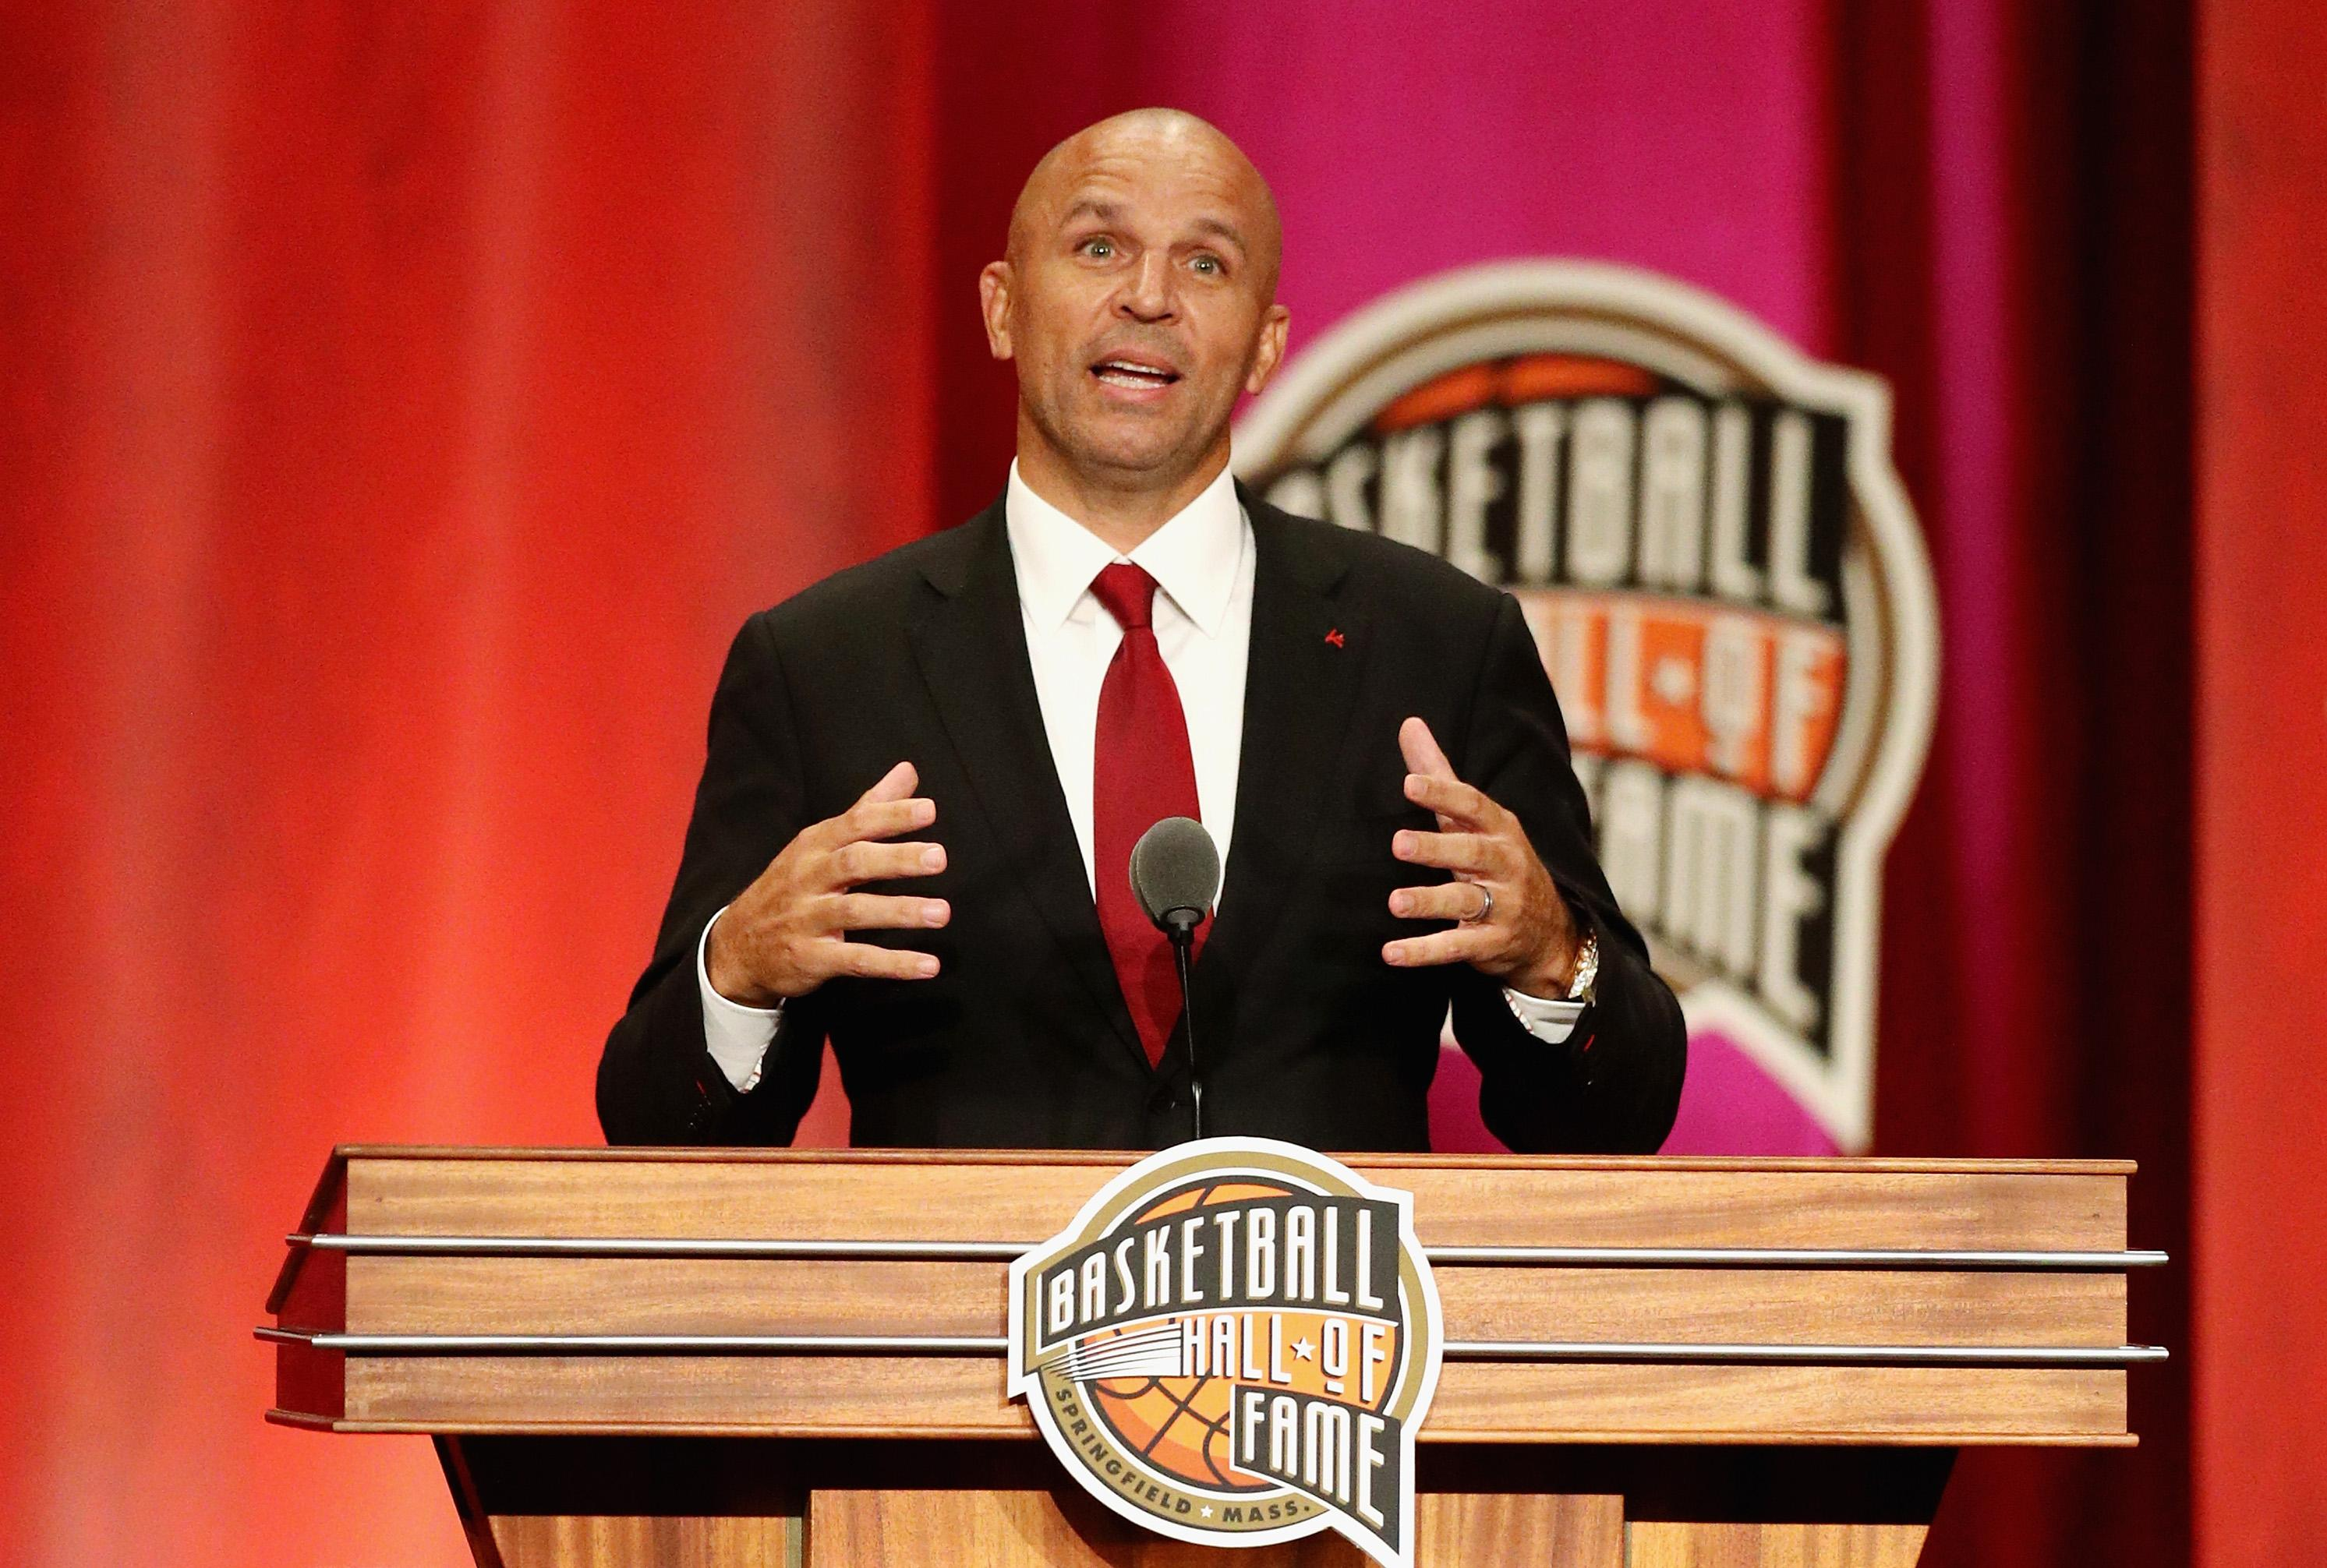 733f7f9e4ec Lakers Rumors: Jason Kidd Not On Los Angeles' Head Coaching List ...